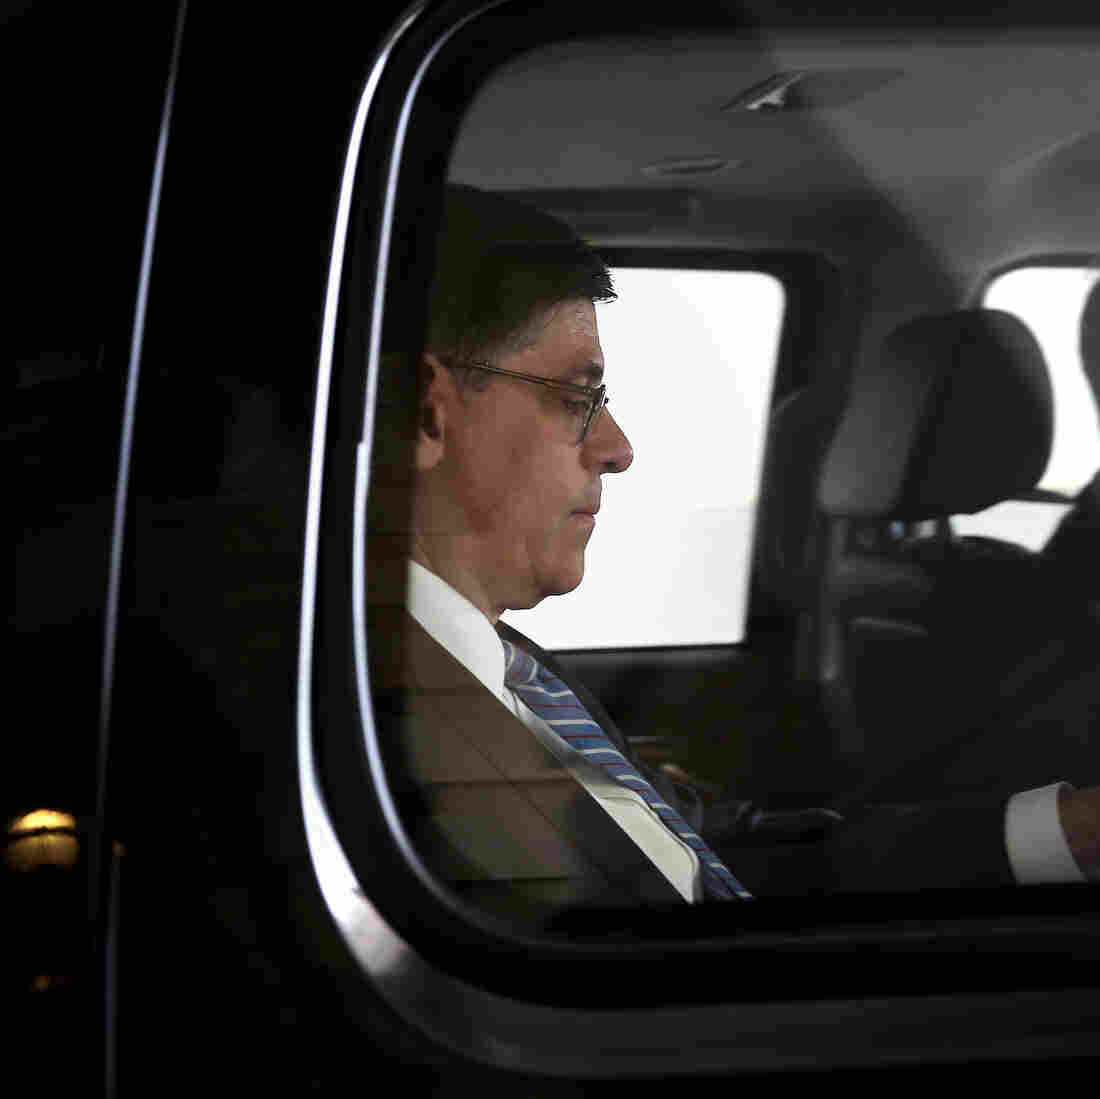 Treasury Secretary Jacob Lew leaves the Capitol after a visit on Thursday.